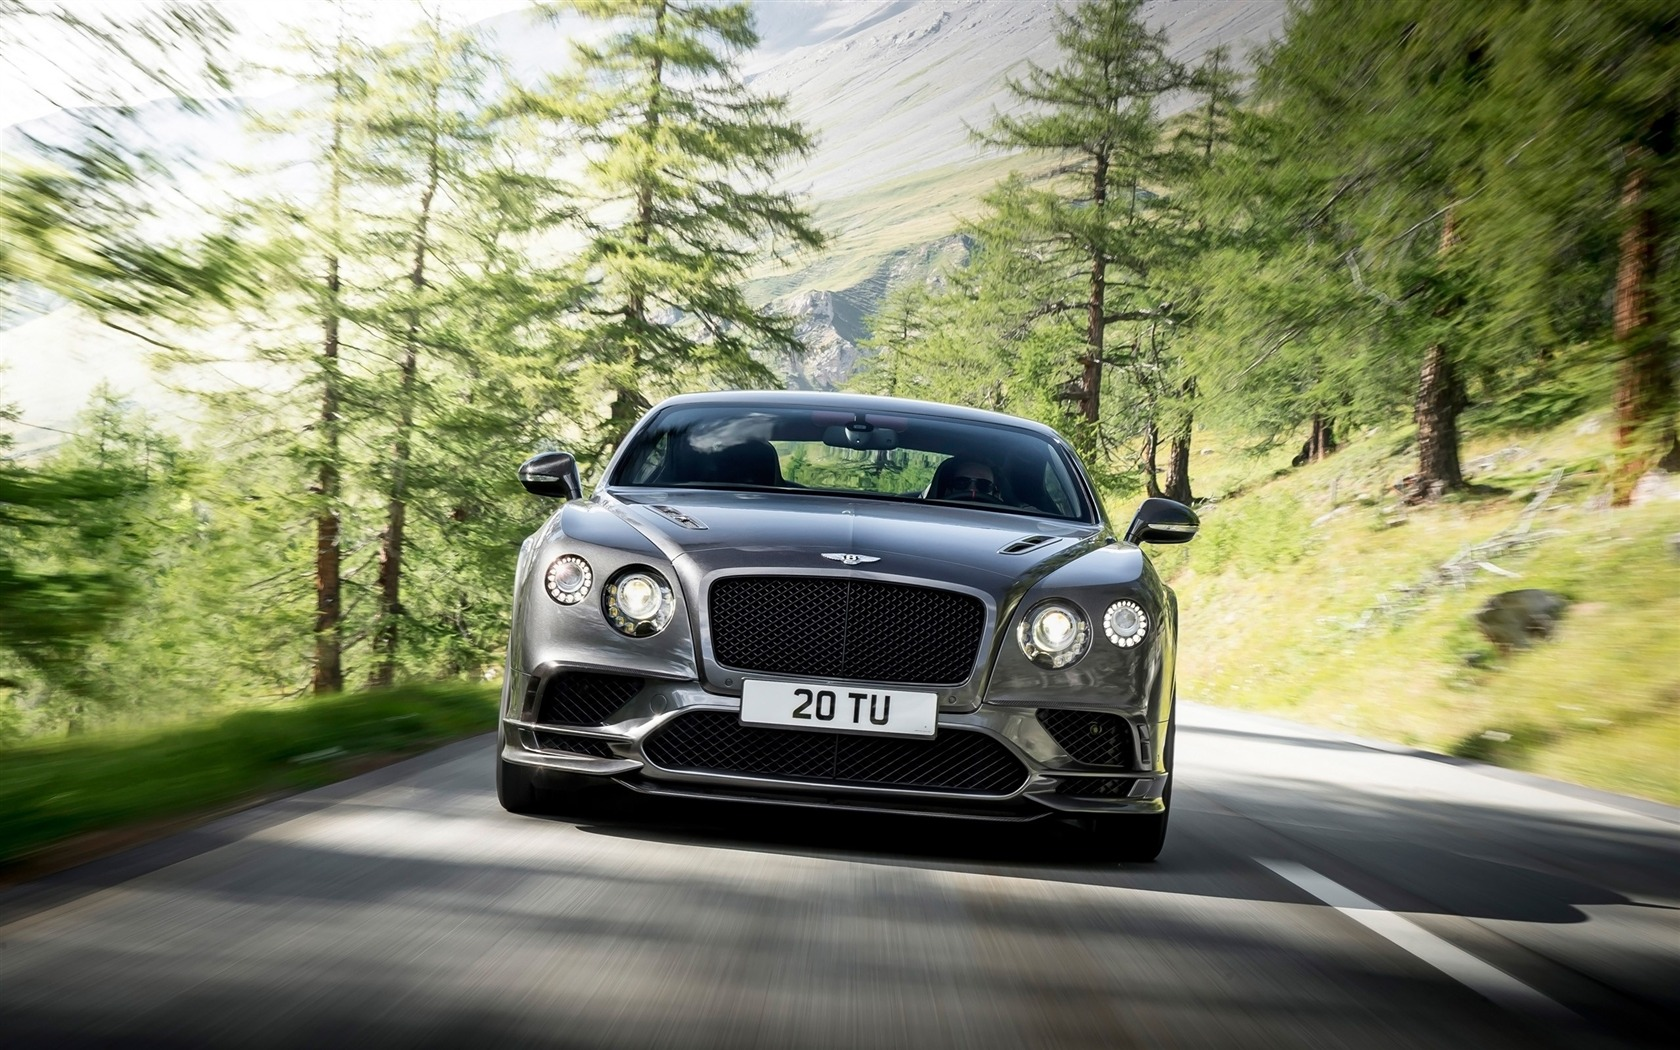 2017 Bentley Continental-Brand Car HD Wallpaper - 1680x1050 wallpaper download